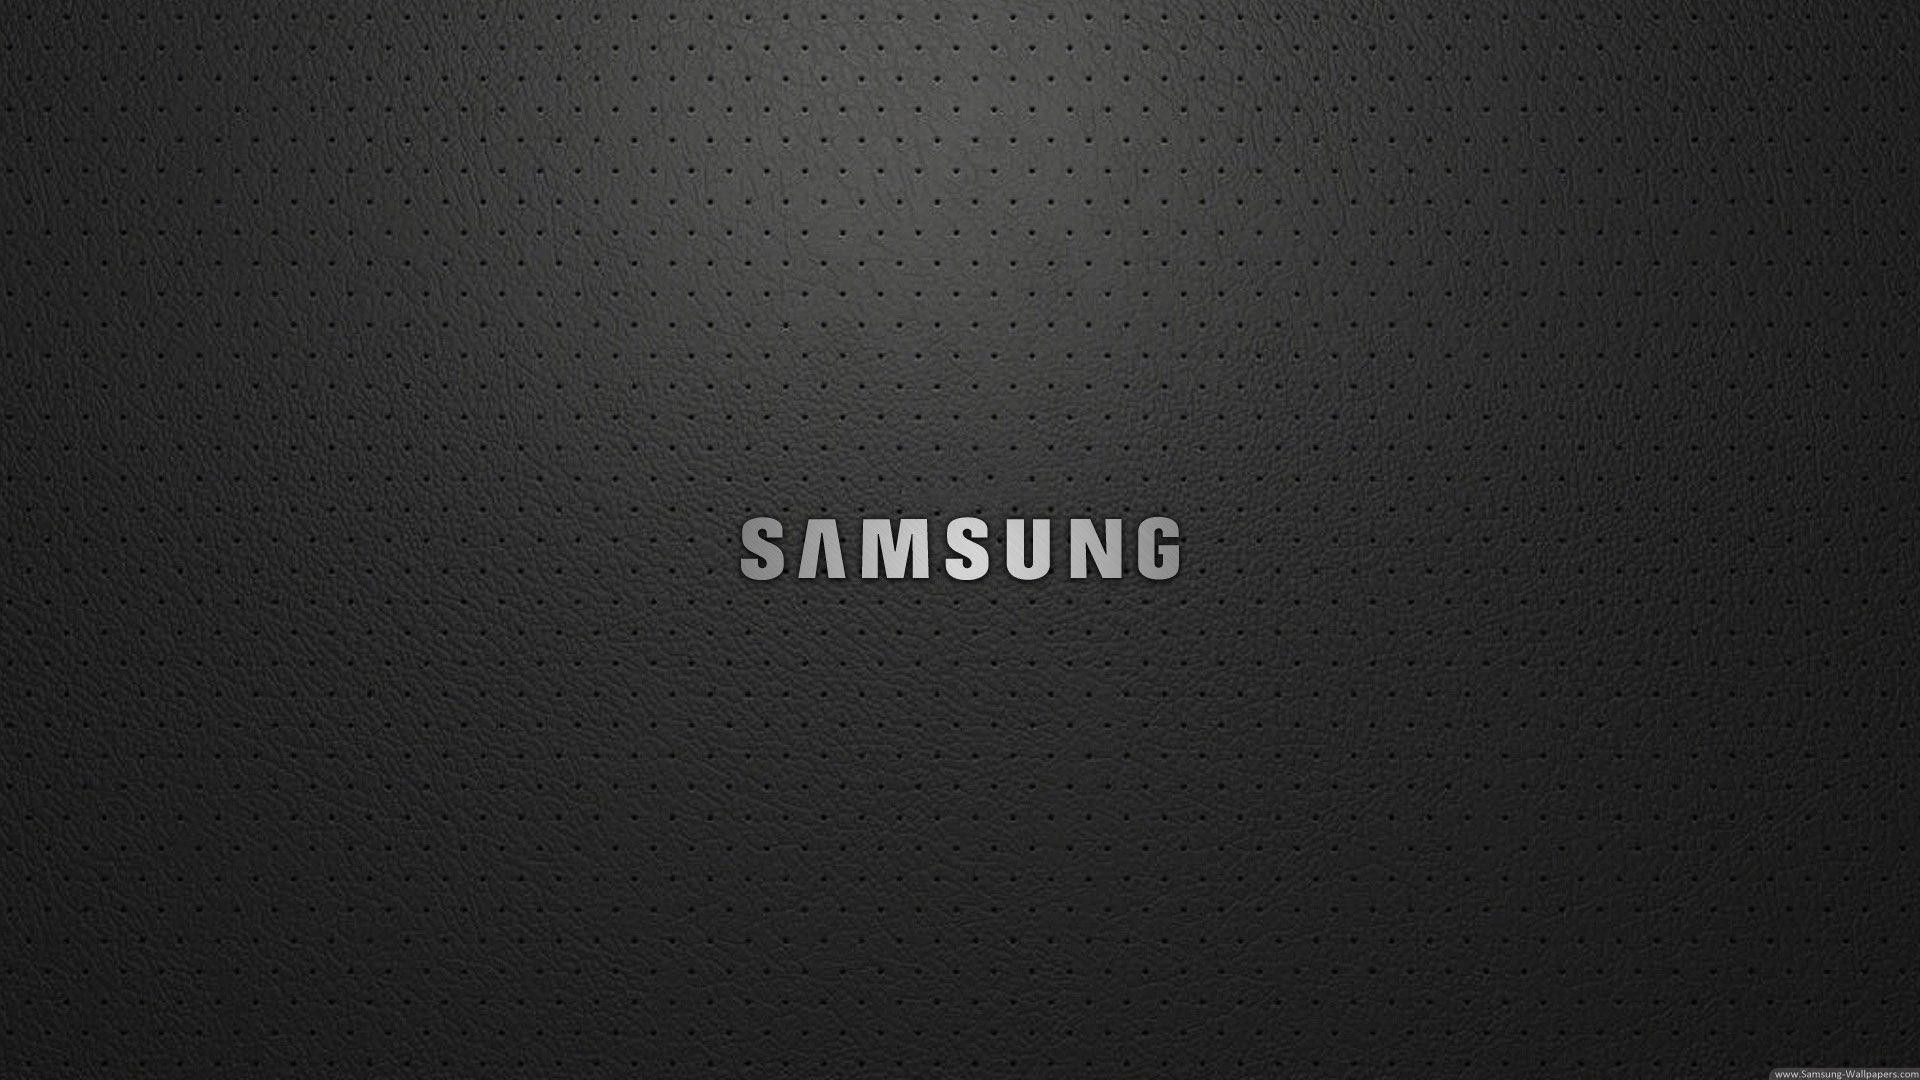 Samsung Logo Wallpapers Top Free Samsung Logo Backgrounds Wallpaperaccess